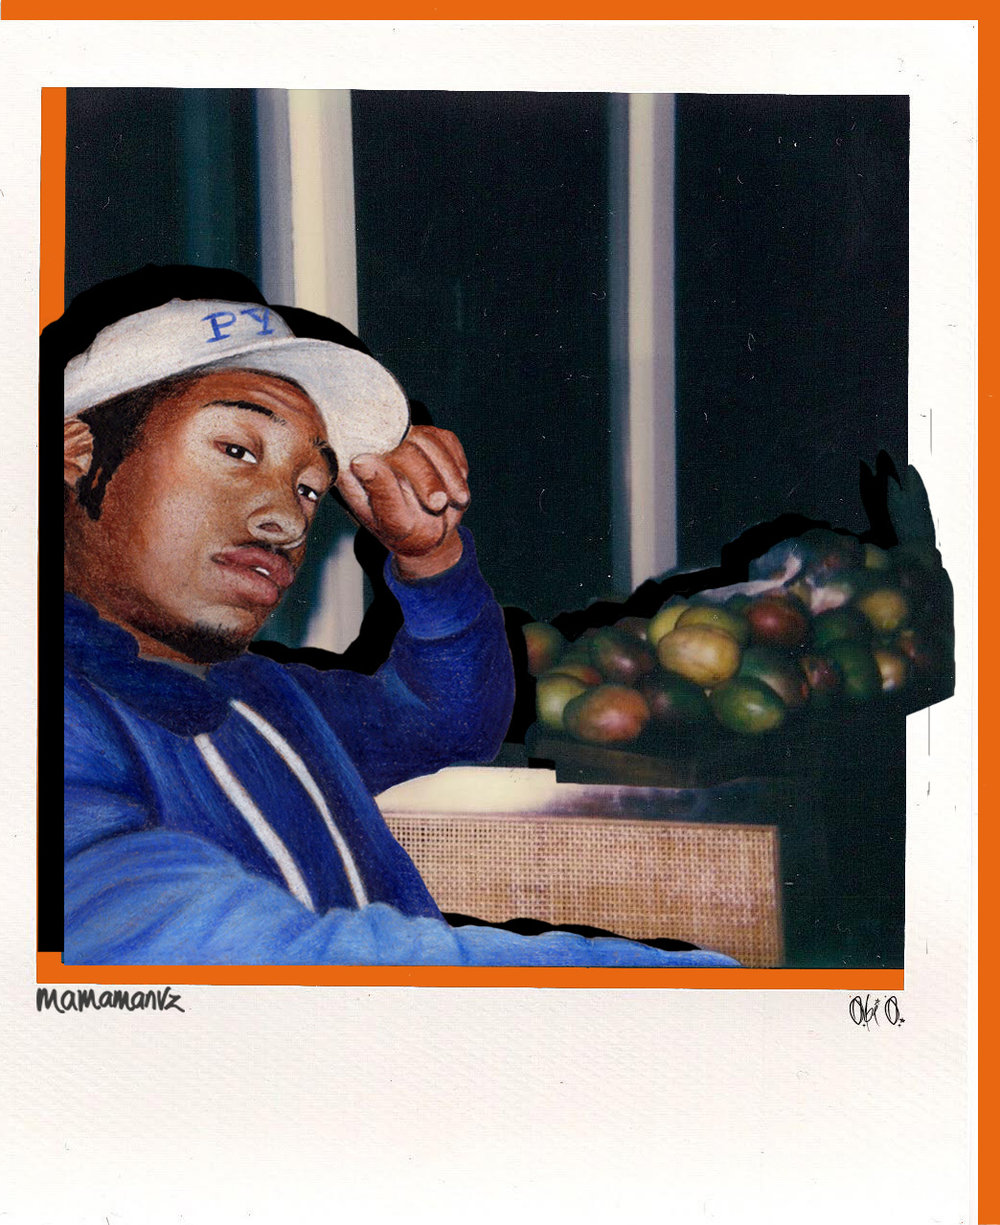 Dany - original polaroid by  Obi O.